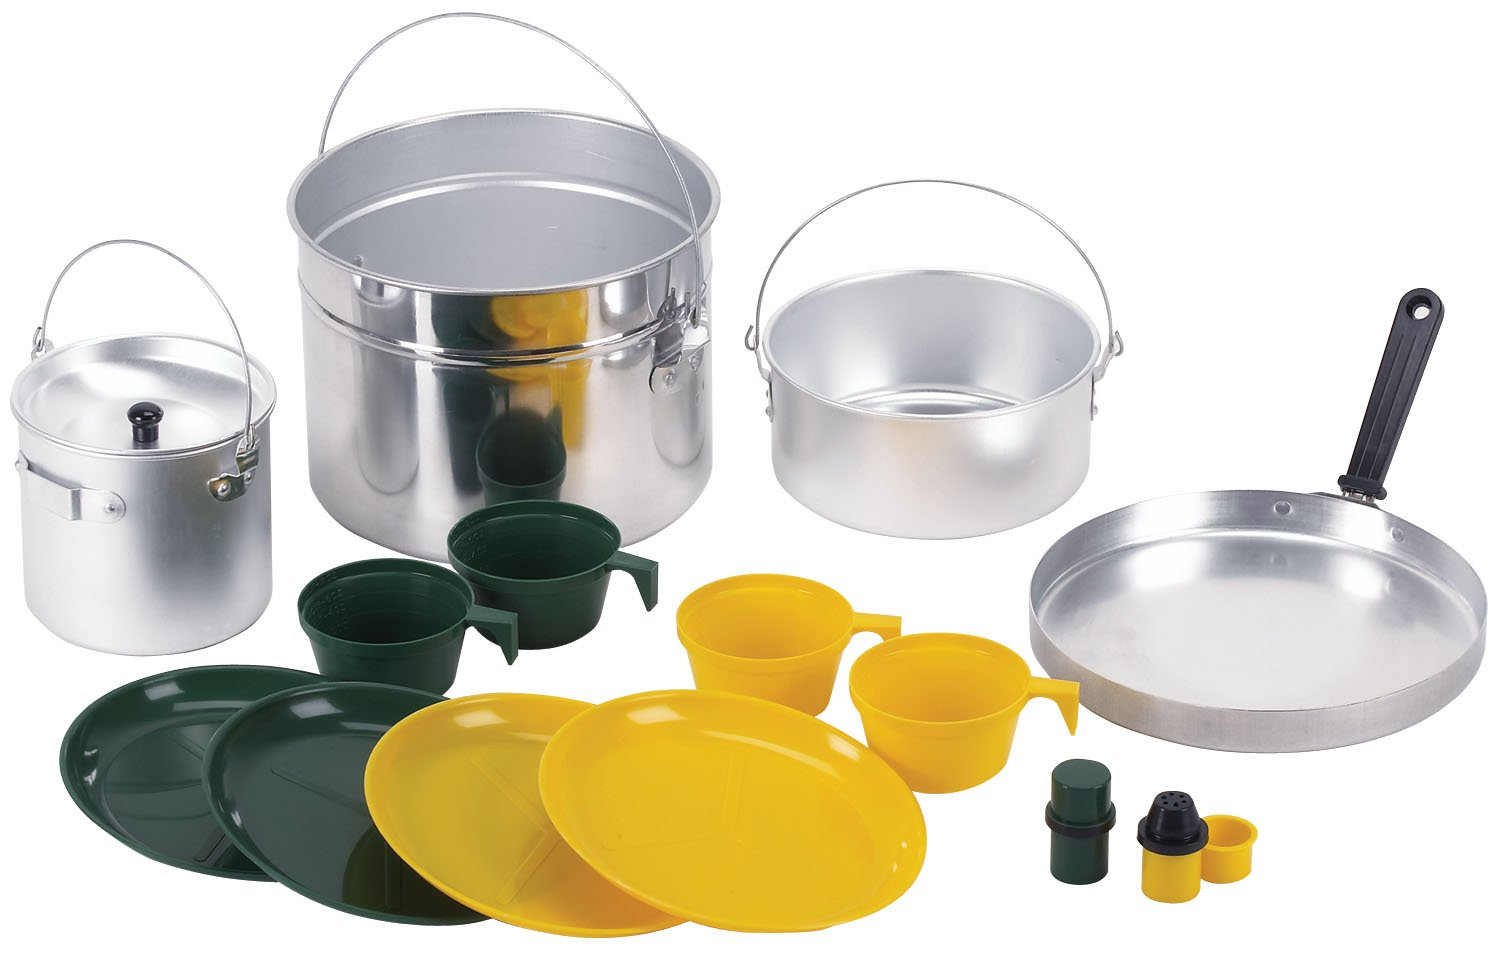 Stansport Deluxe 16 piece Four Party Aluminum Cook Set 312